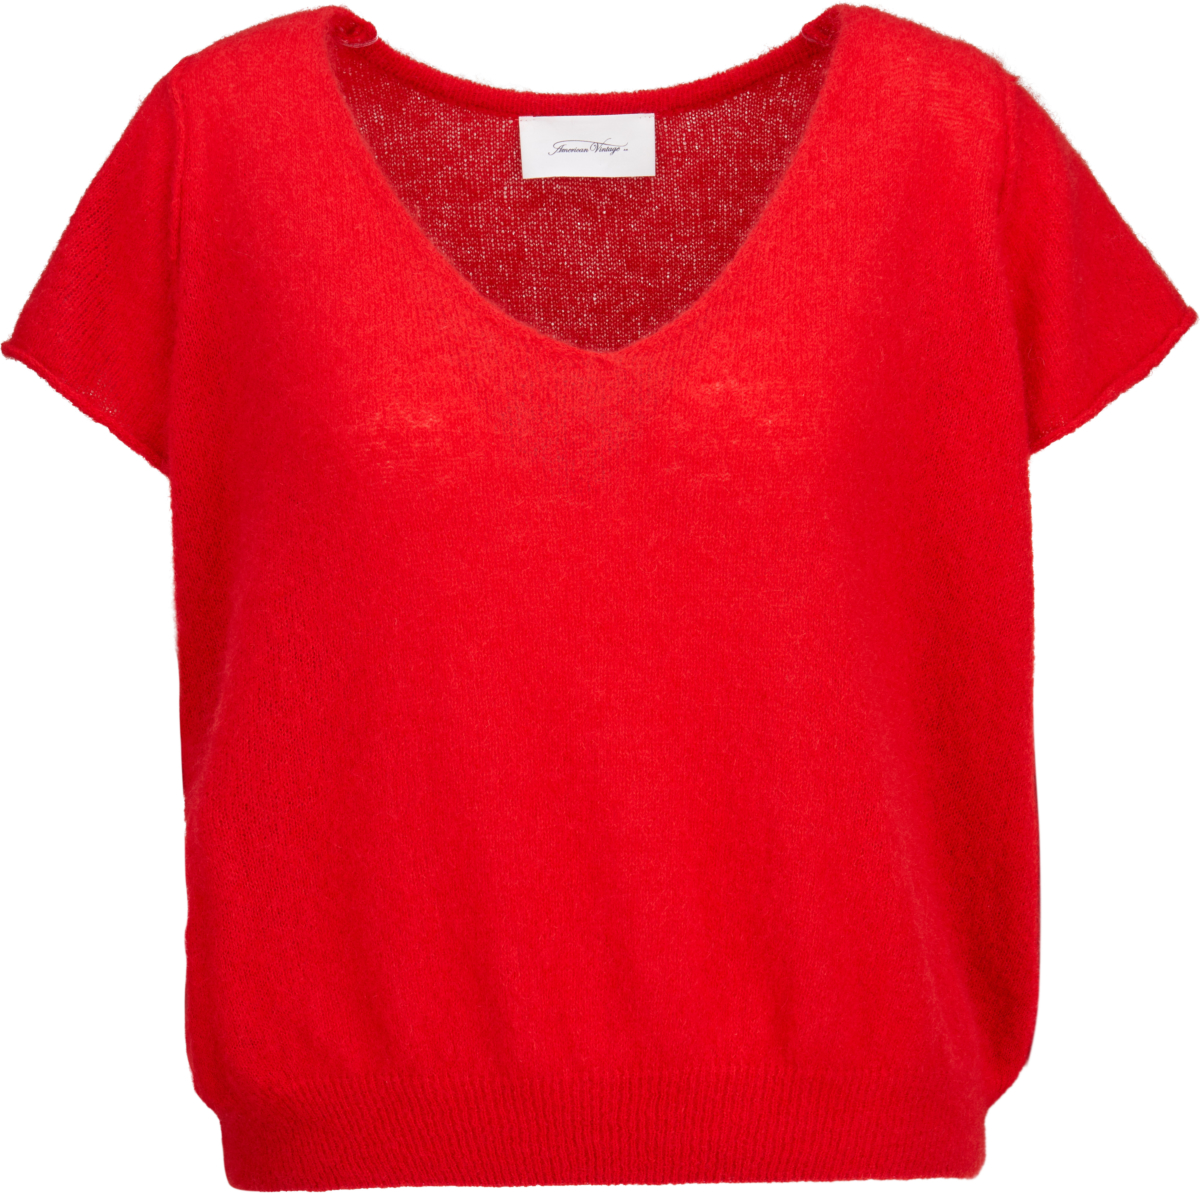 American Vintage Kurzarm-Pullover in Rot 434553